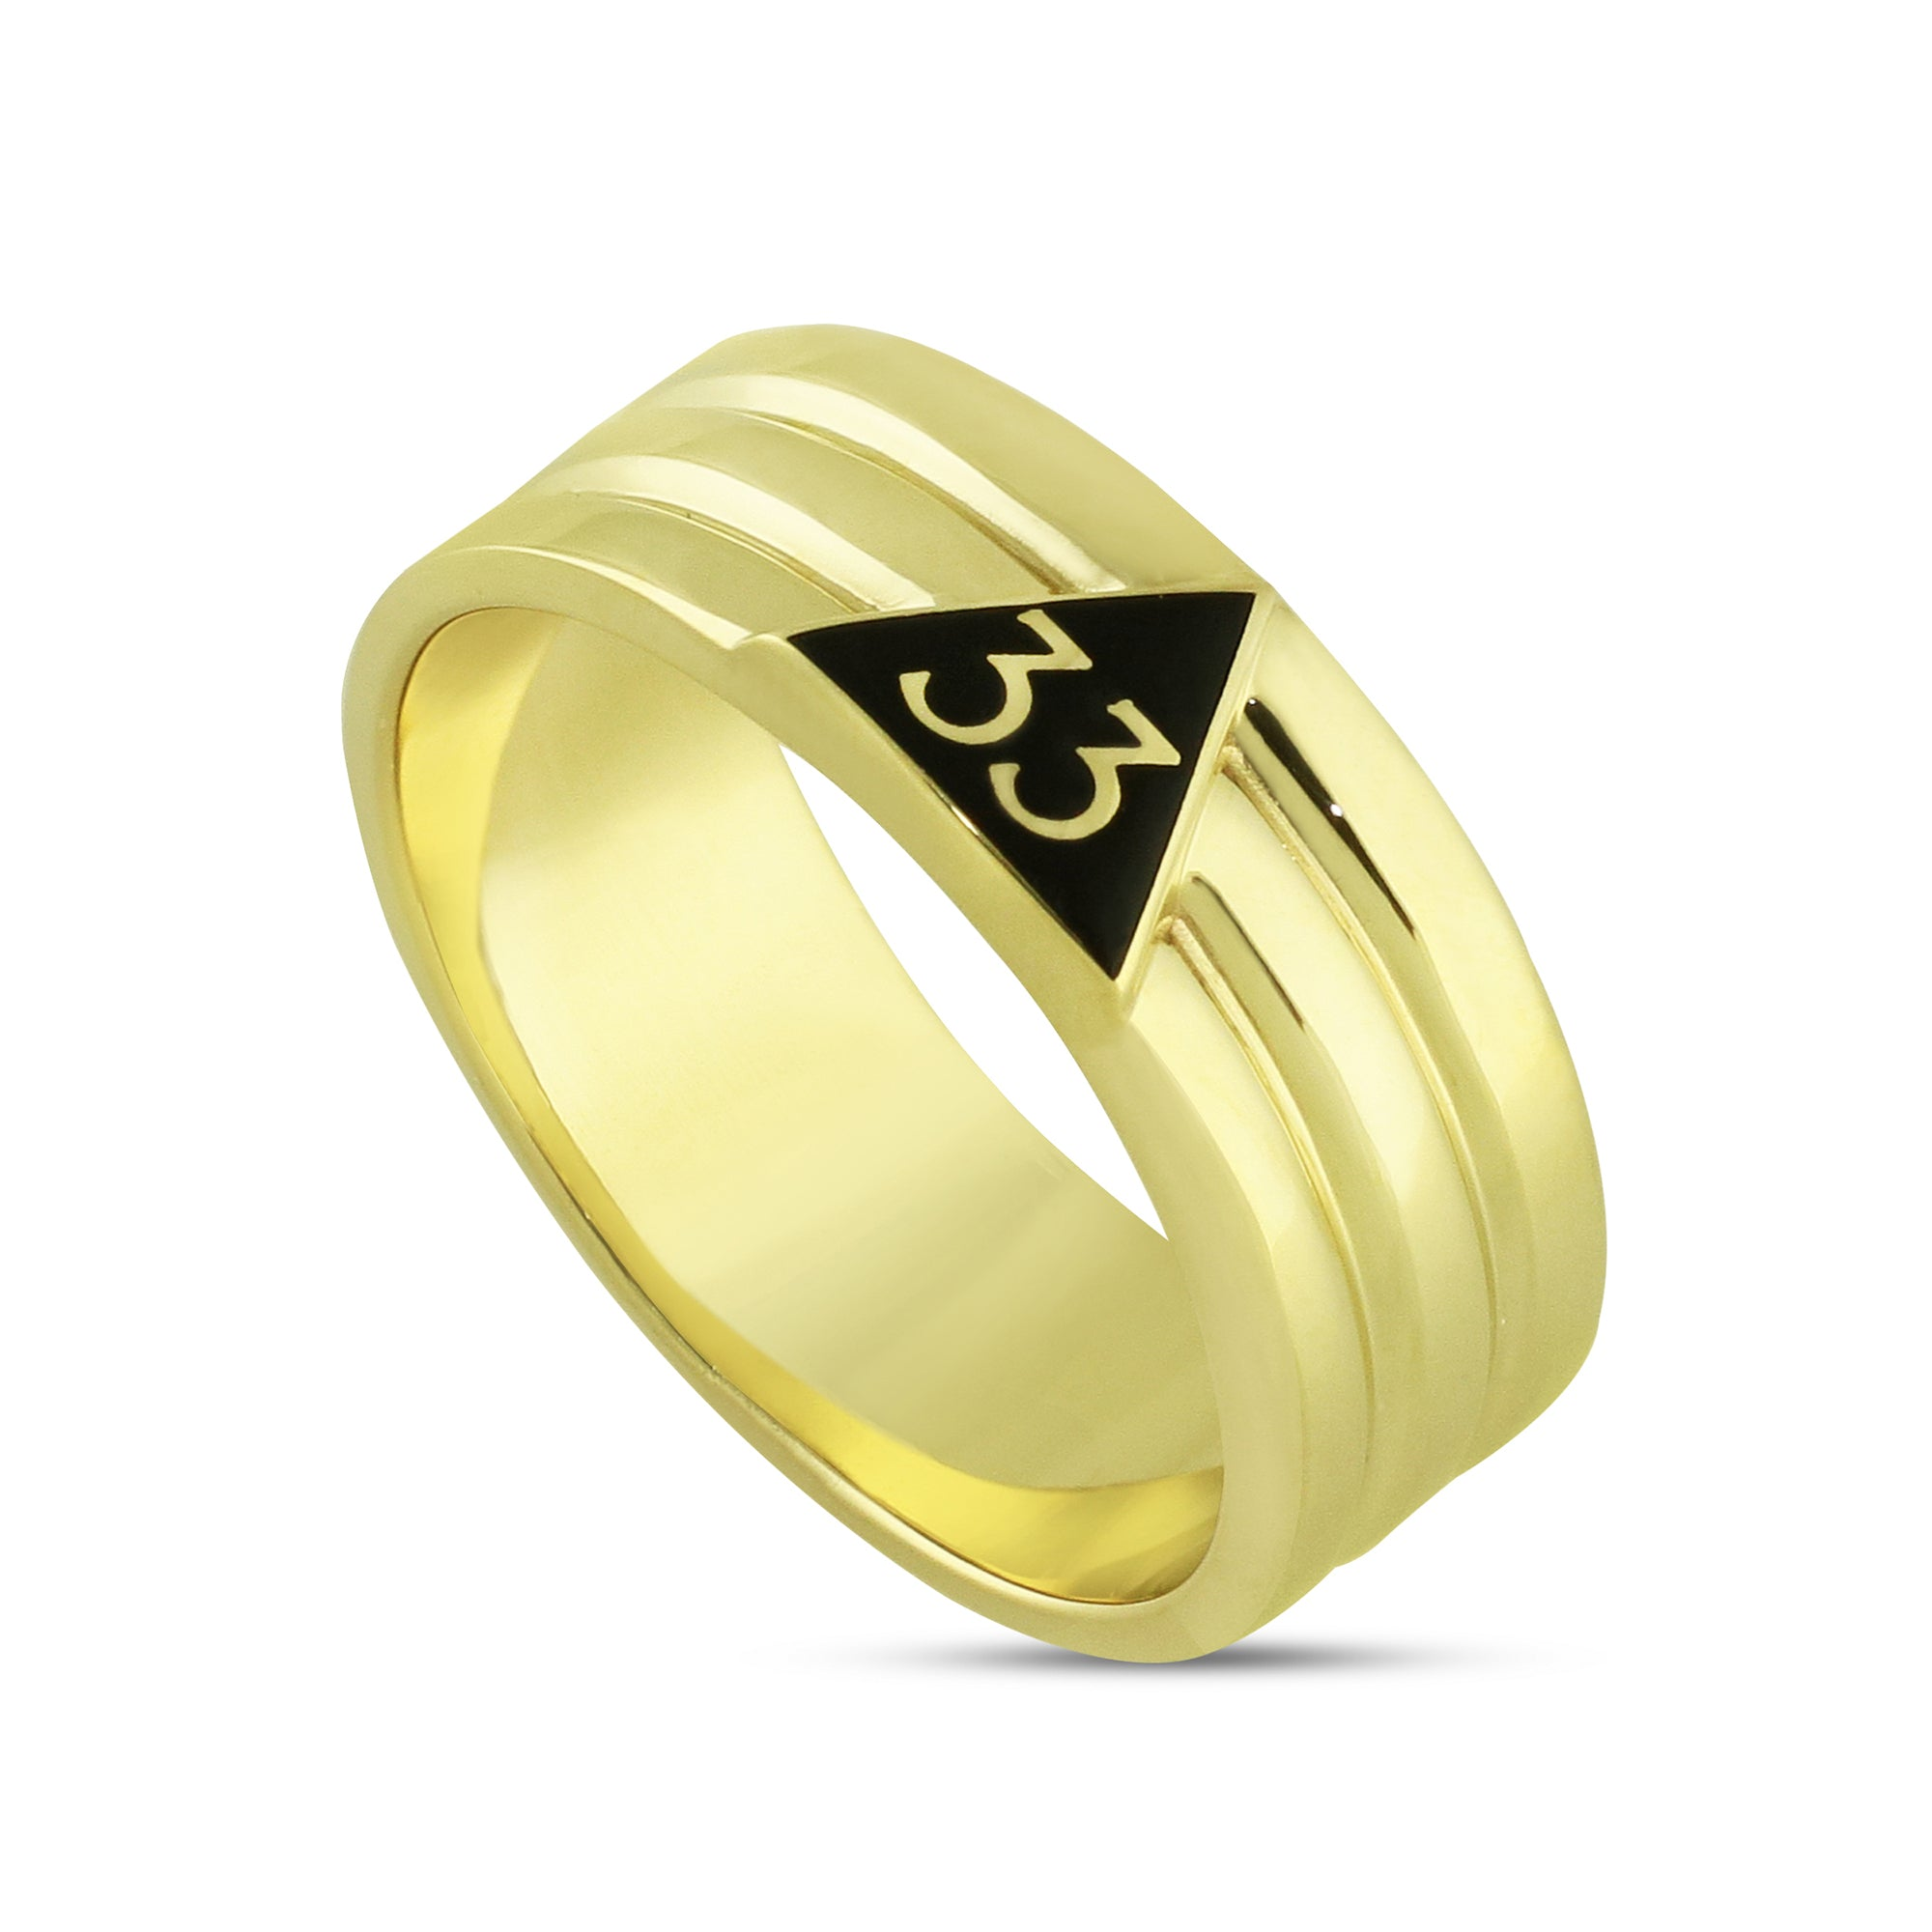 33rd Degree Ring w/black enamel